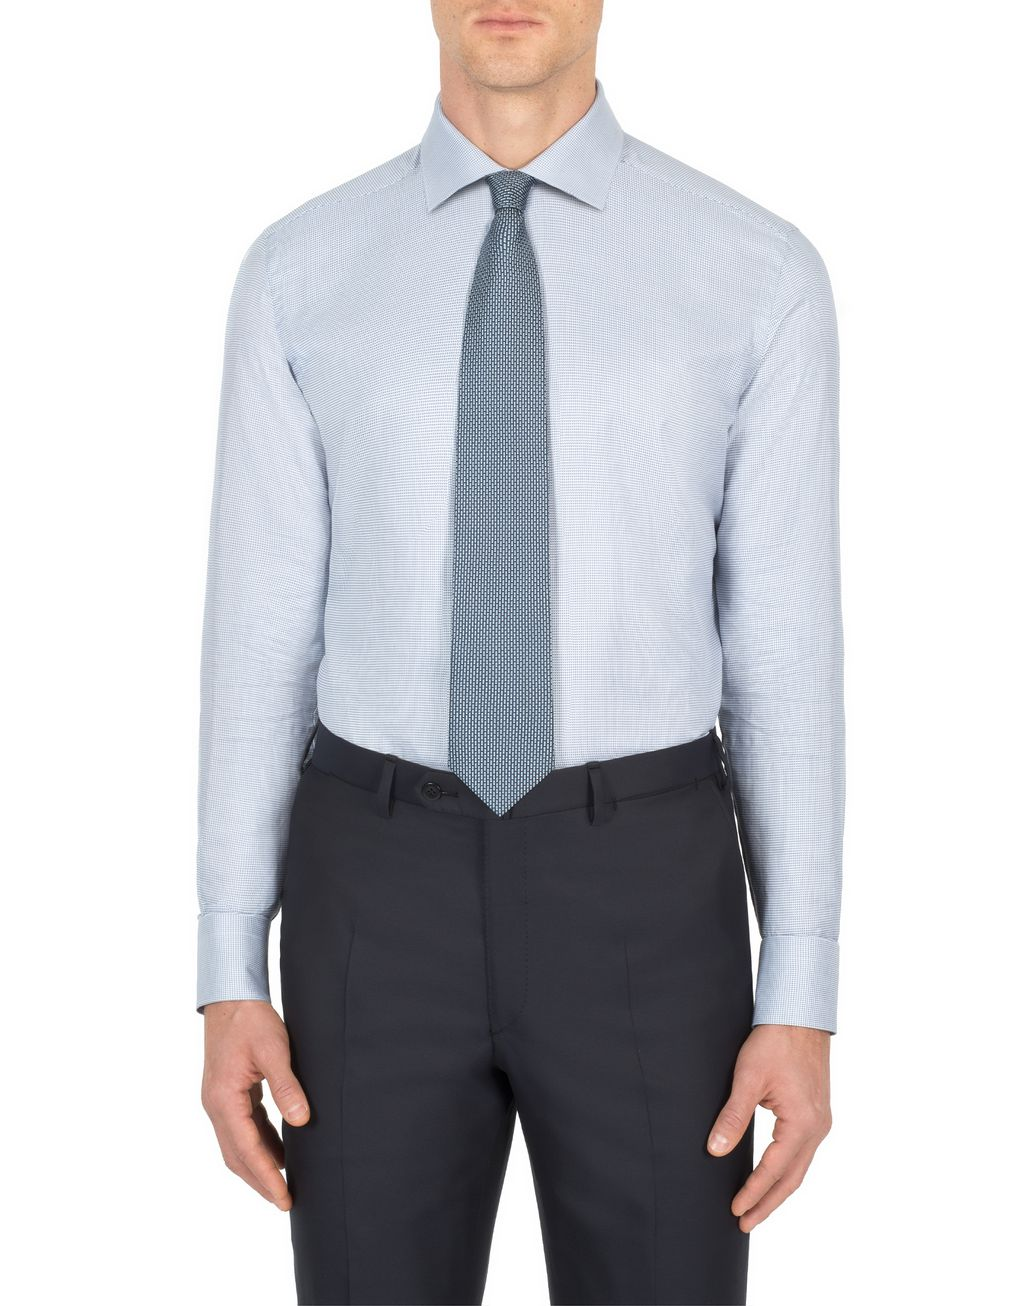 BRIONI Bluette and White Micro-Design Formal Shirt Formal shirt Man r